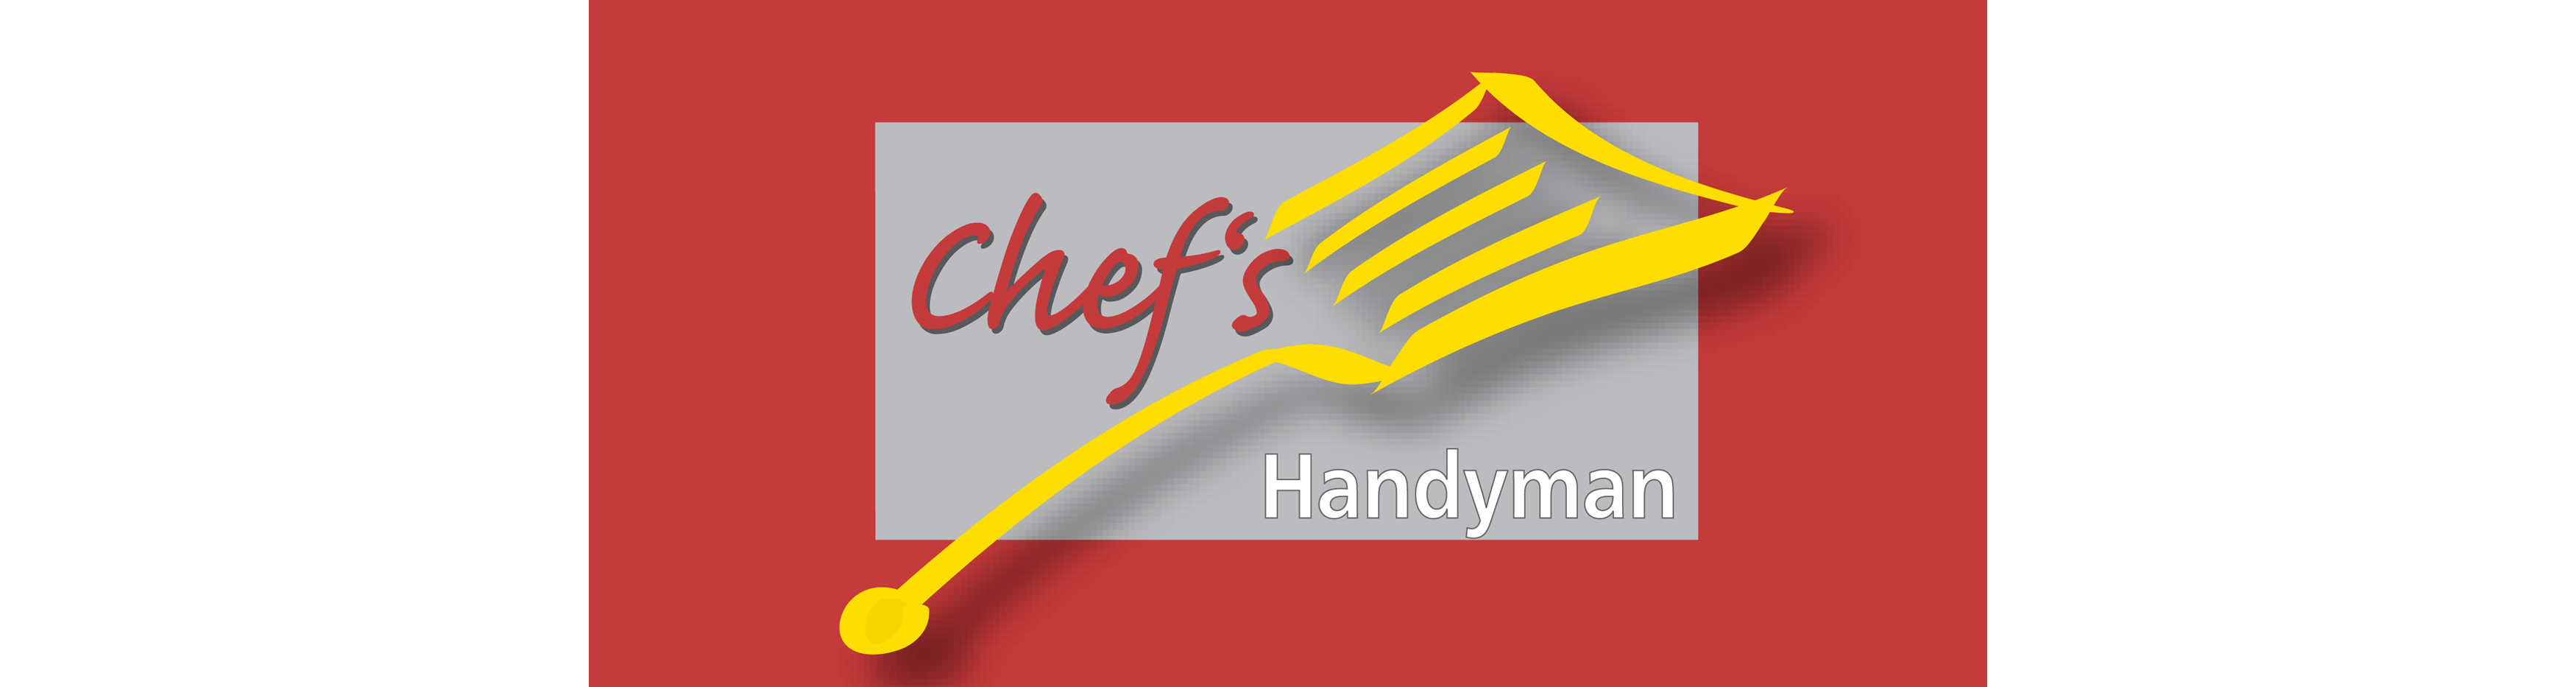 Chef's Handyman English